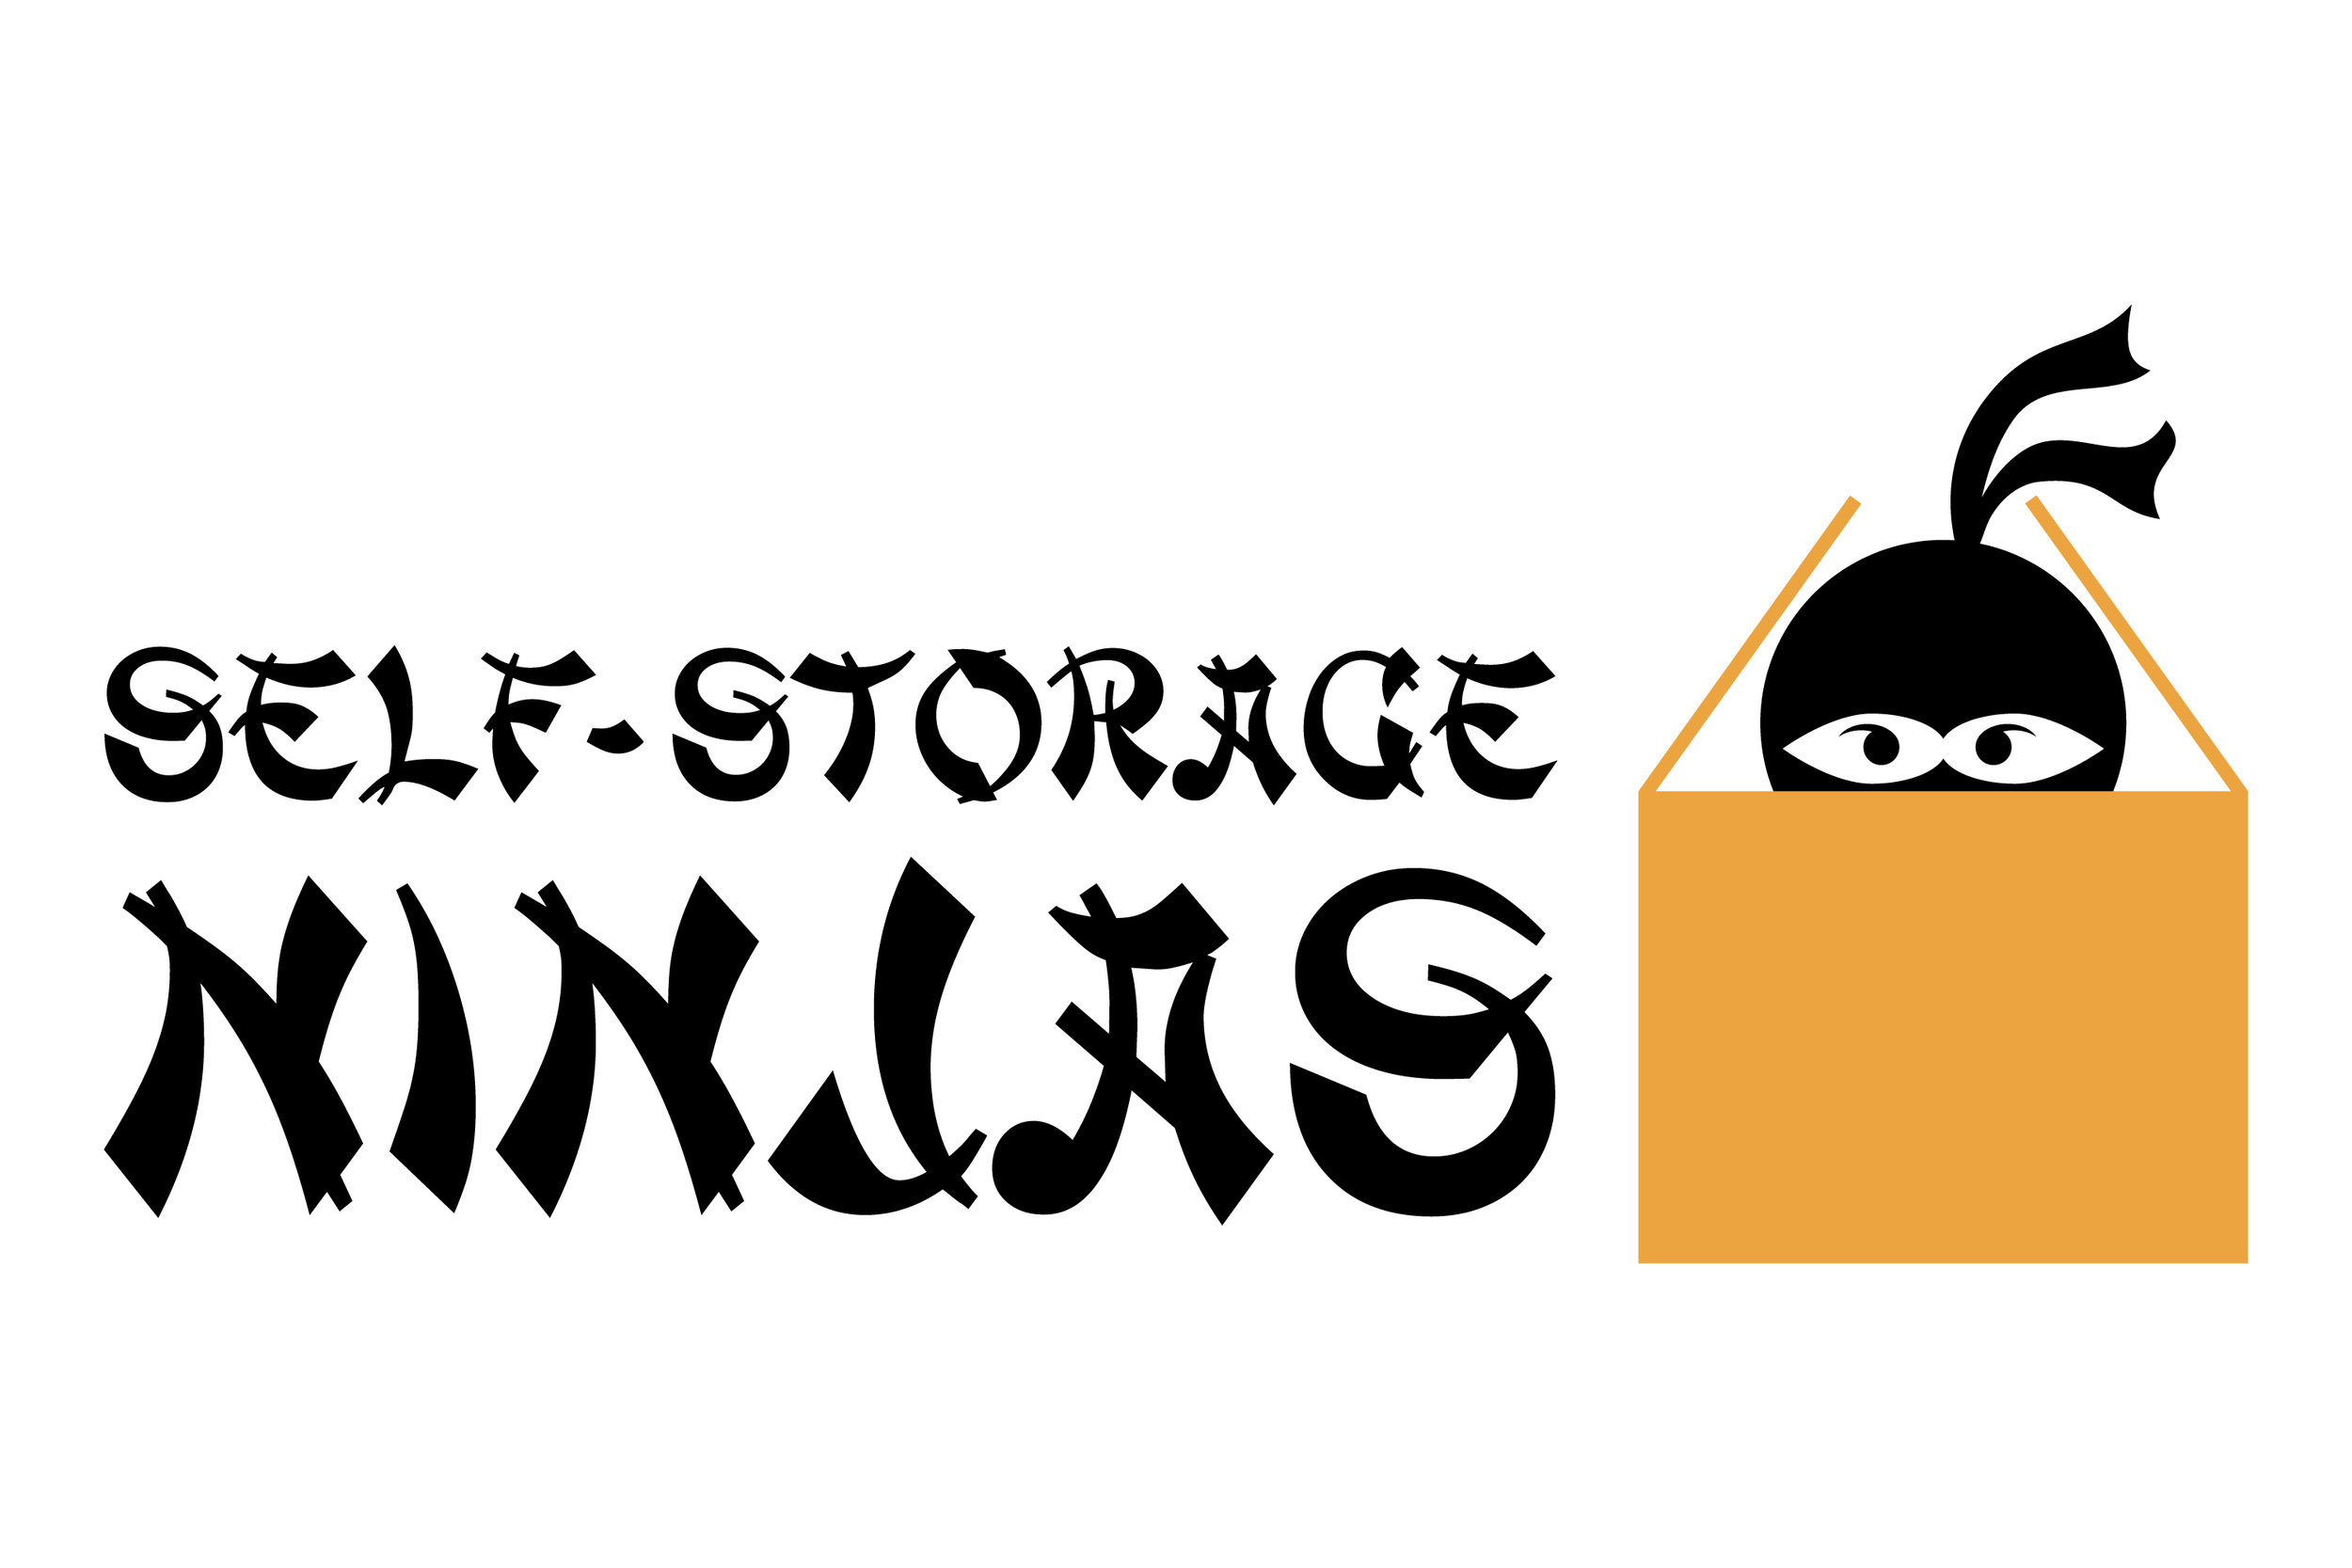 self-storage-feasibility study | Self Storage Ninjas Logo